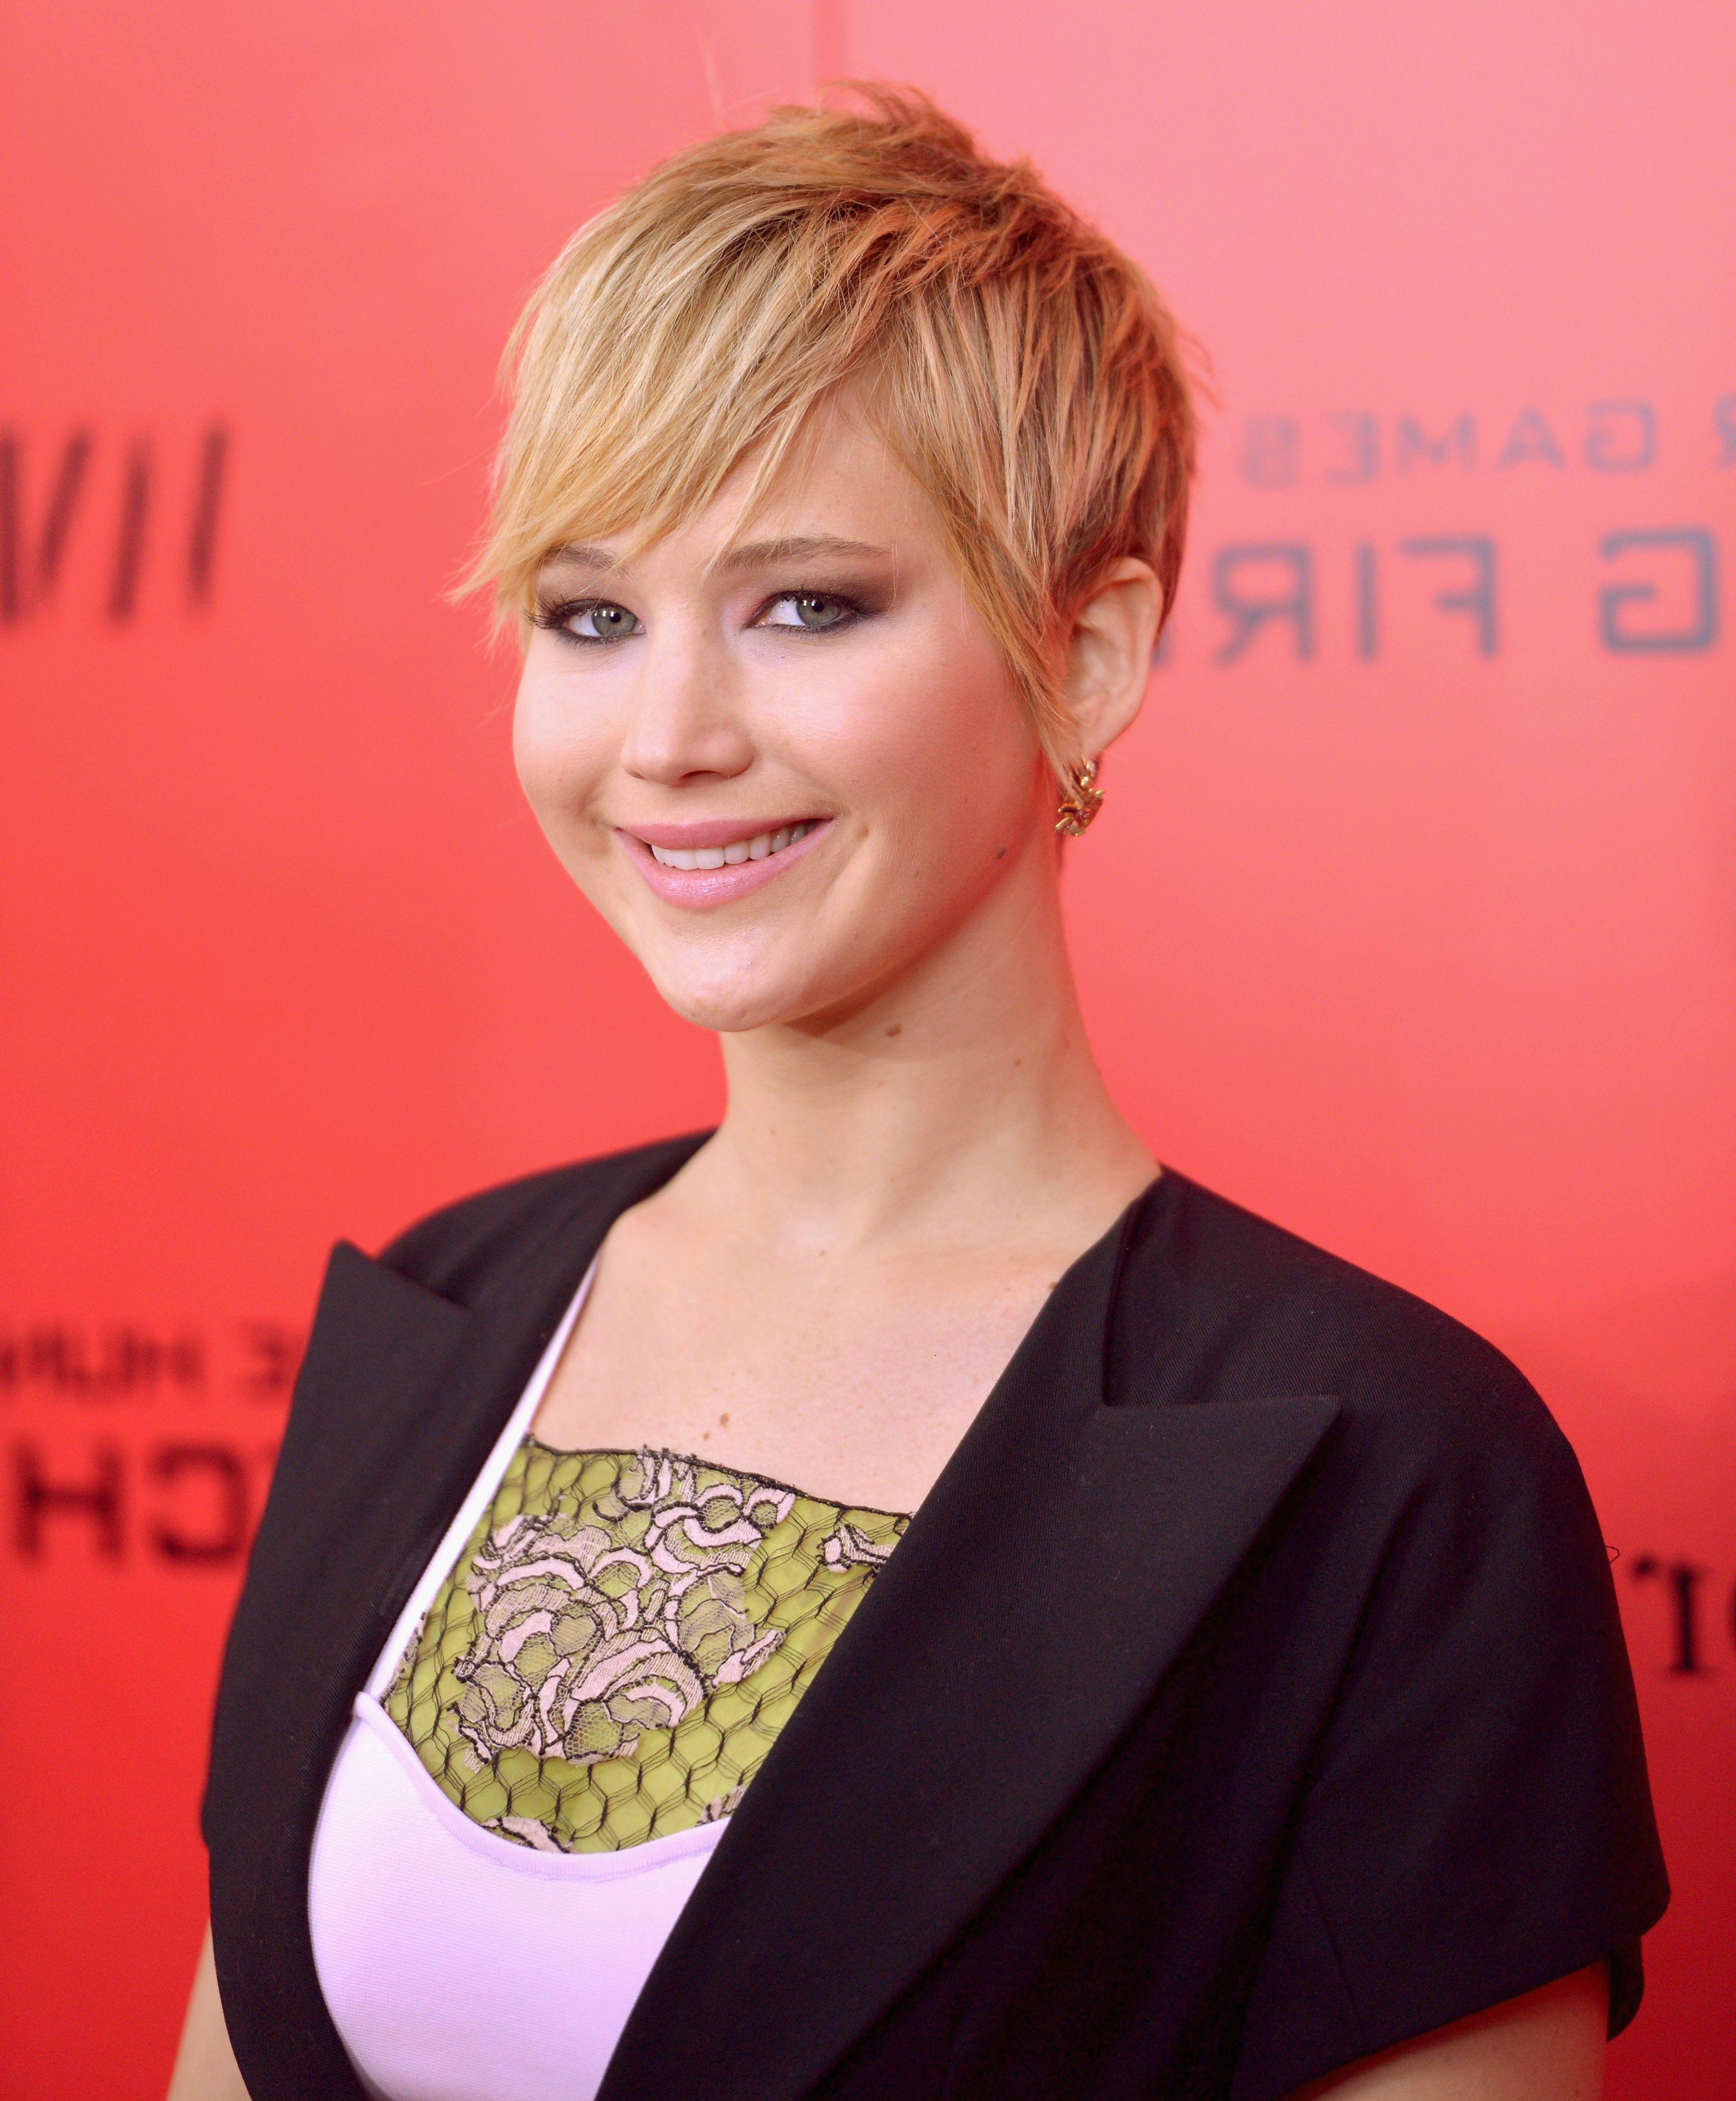 40 Best Short Pixie Cut Hairstyles 2018 – Cute Pixie Haircuts For Women Regarding Gray Pixie Hairstyles For Thick Hair (View 10 of 20)